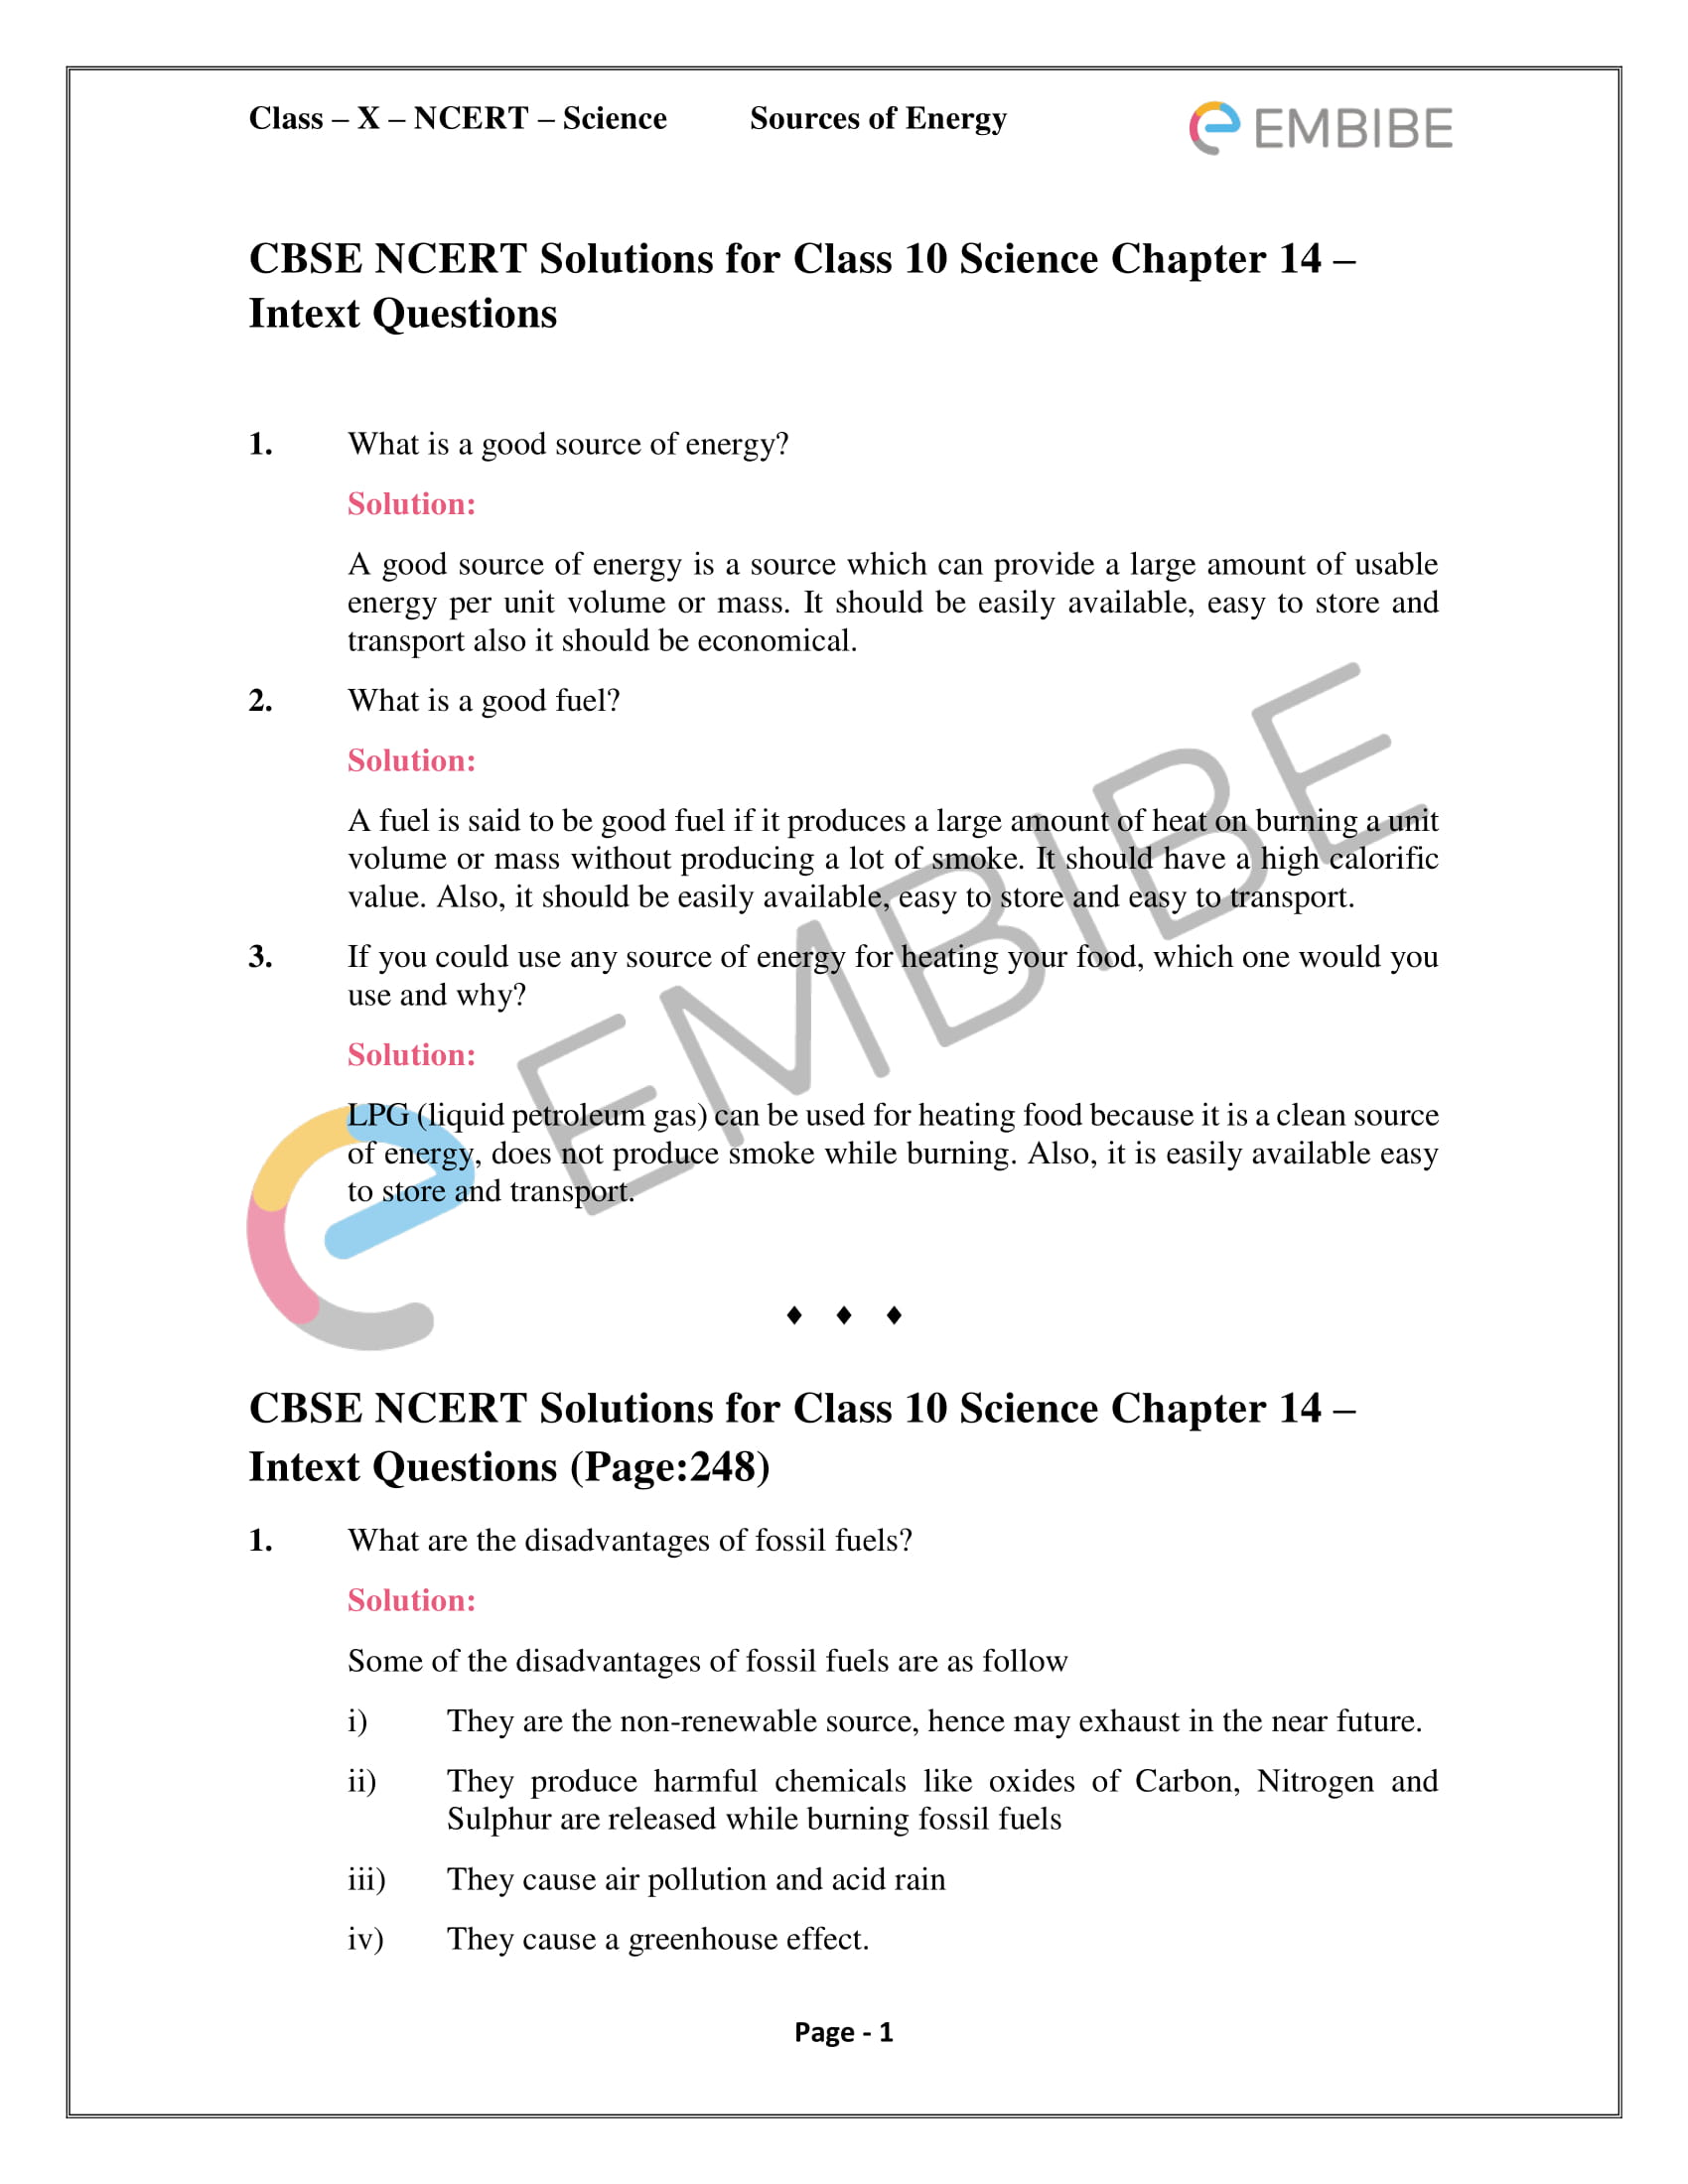 CBSE NCERT Solutions For Class 10 Science Chapter 14